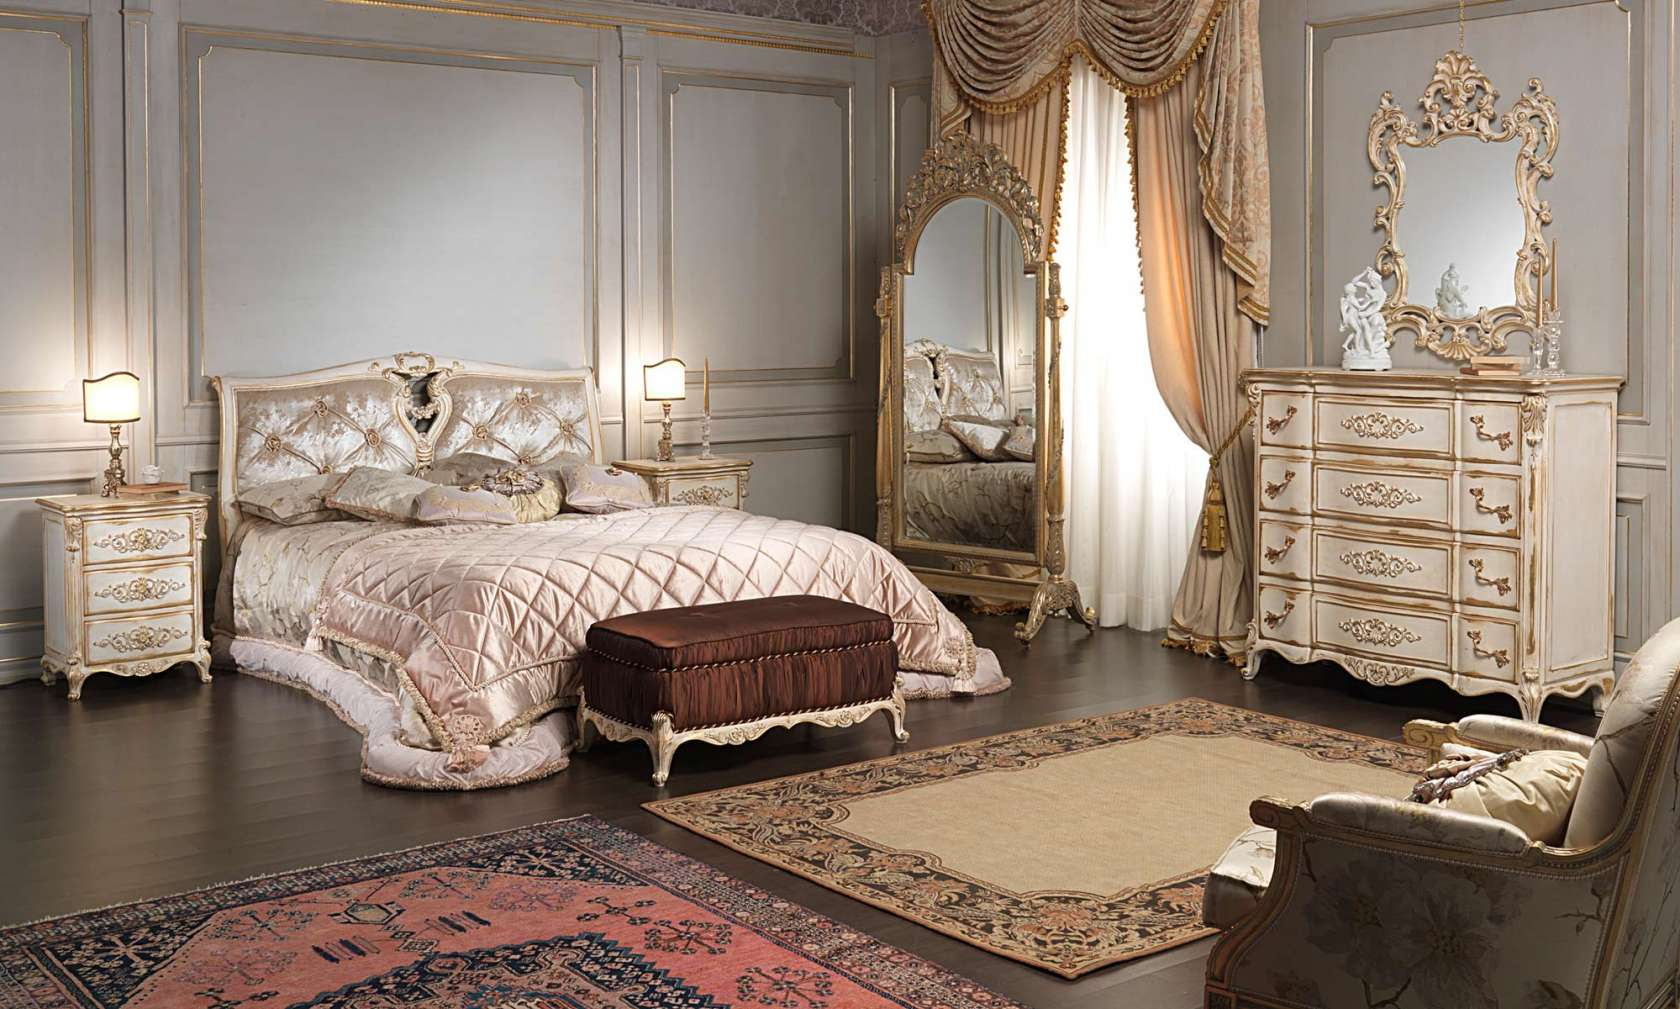 classic louis xvi bedroom bed padded bench chest of